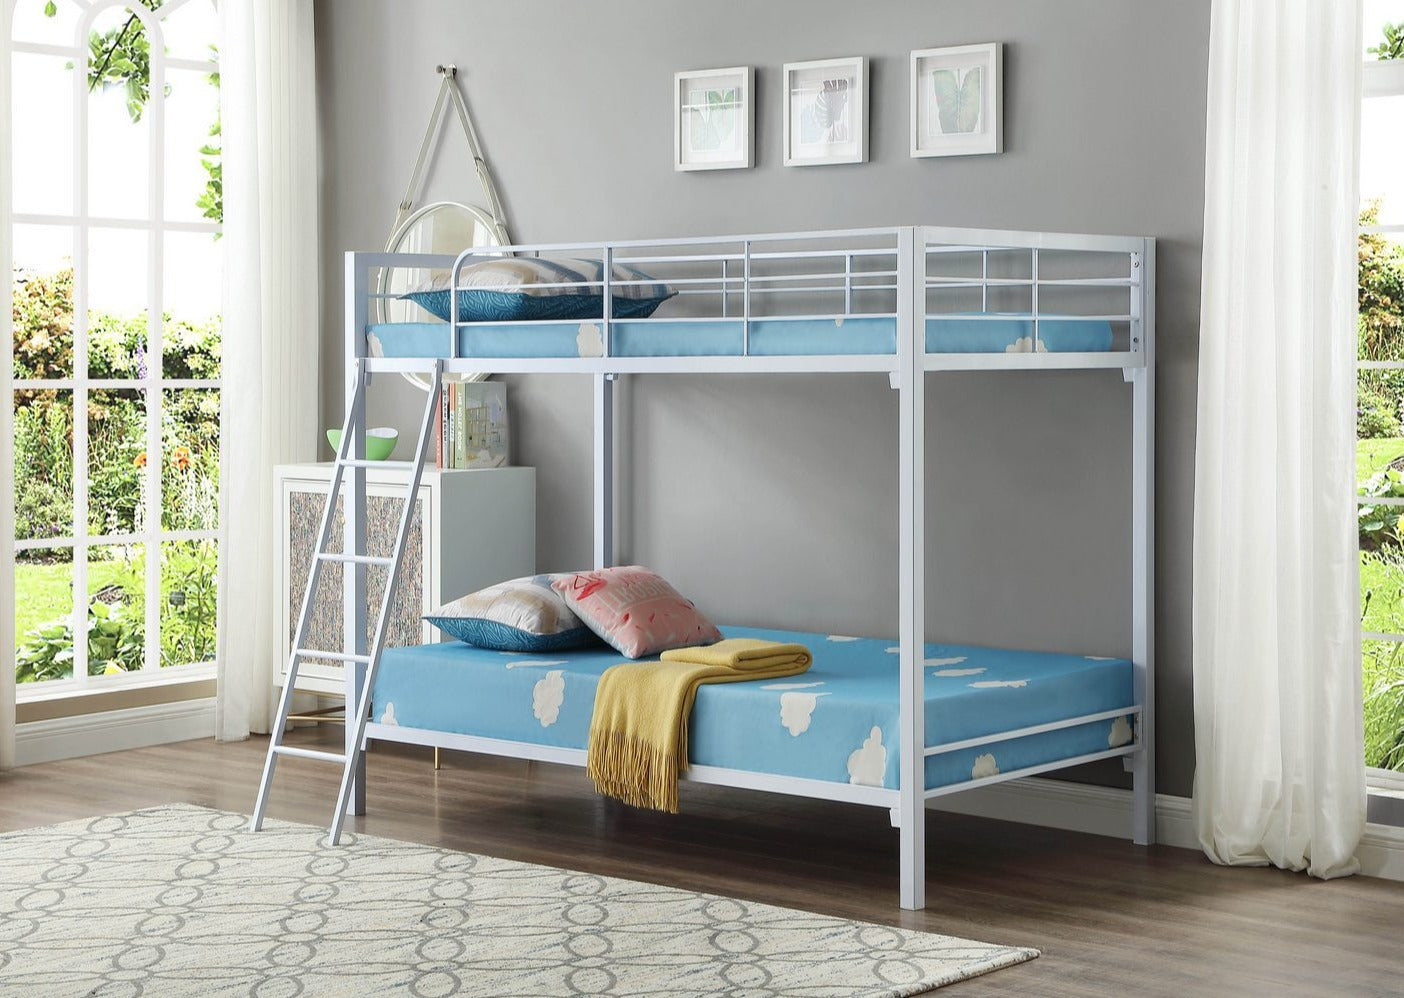 B 531 W - Single / Single - Bunk Bed - White - Lit Superposé